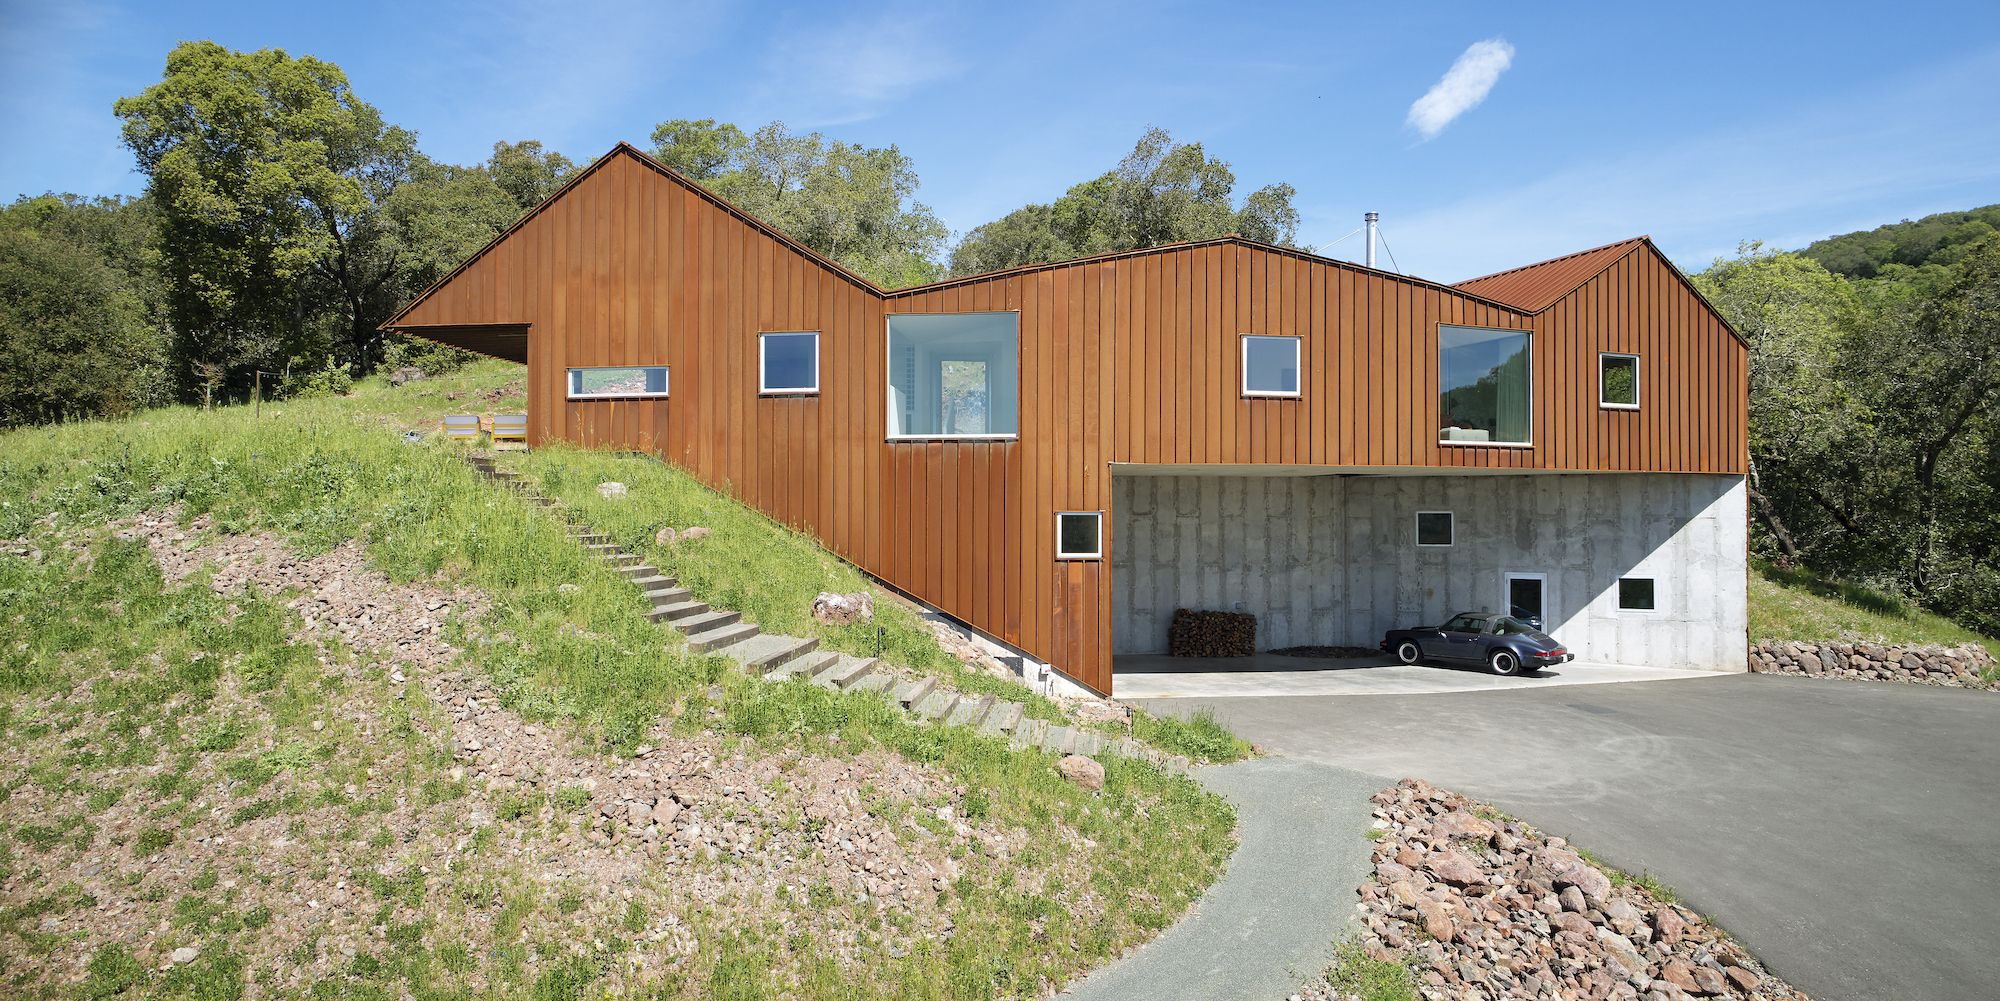 12 Characteristics Of A Modern Scandinavian House Hunker In 2020 Agricultural Buildings Architect Barn House